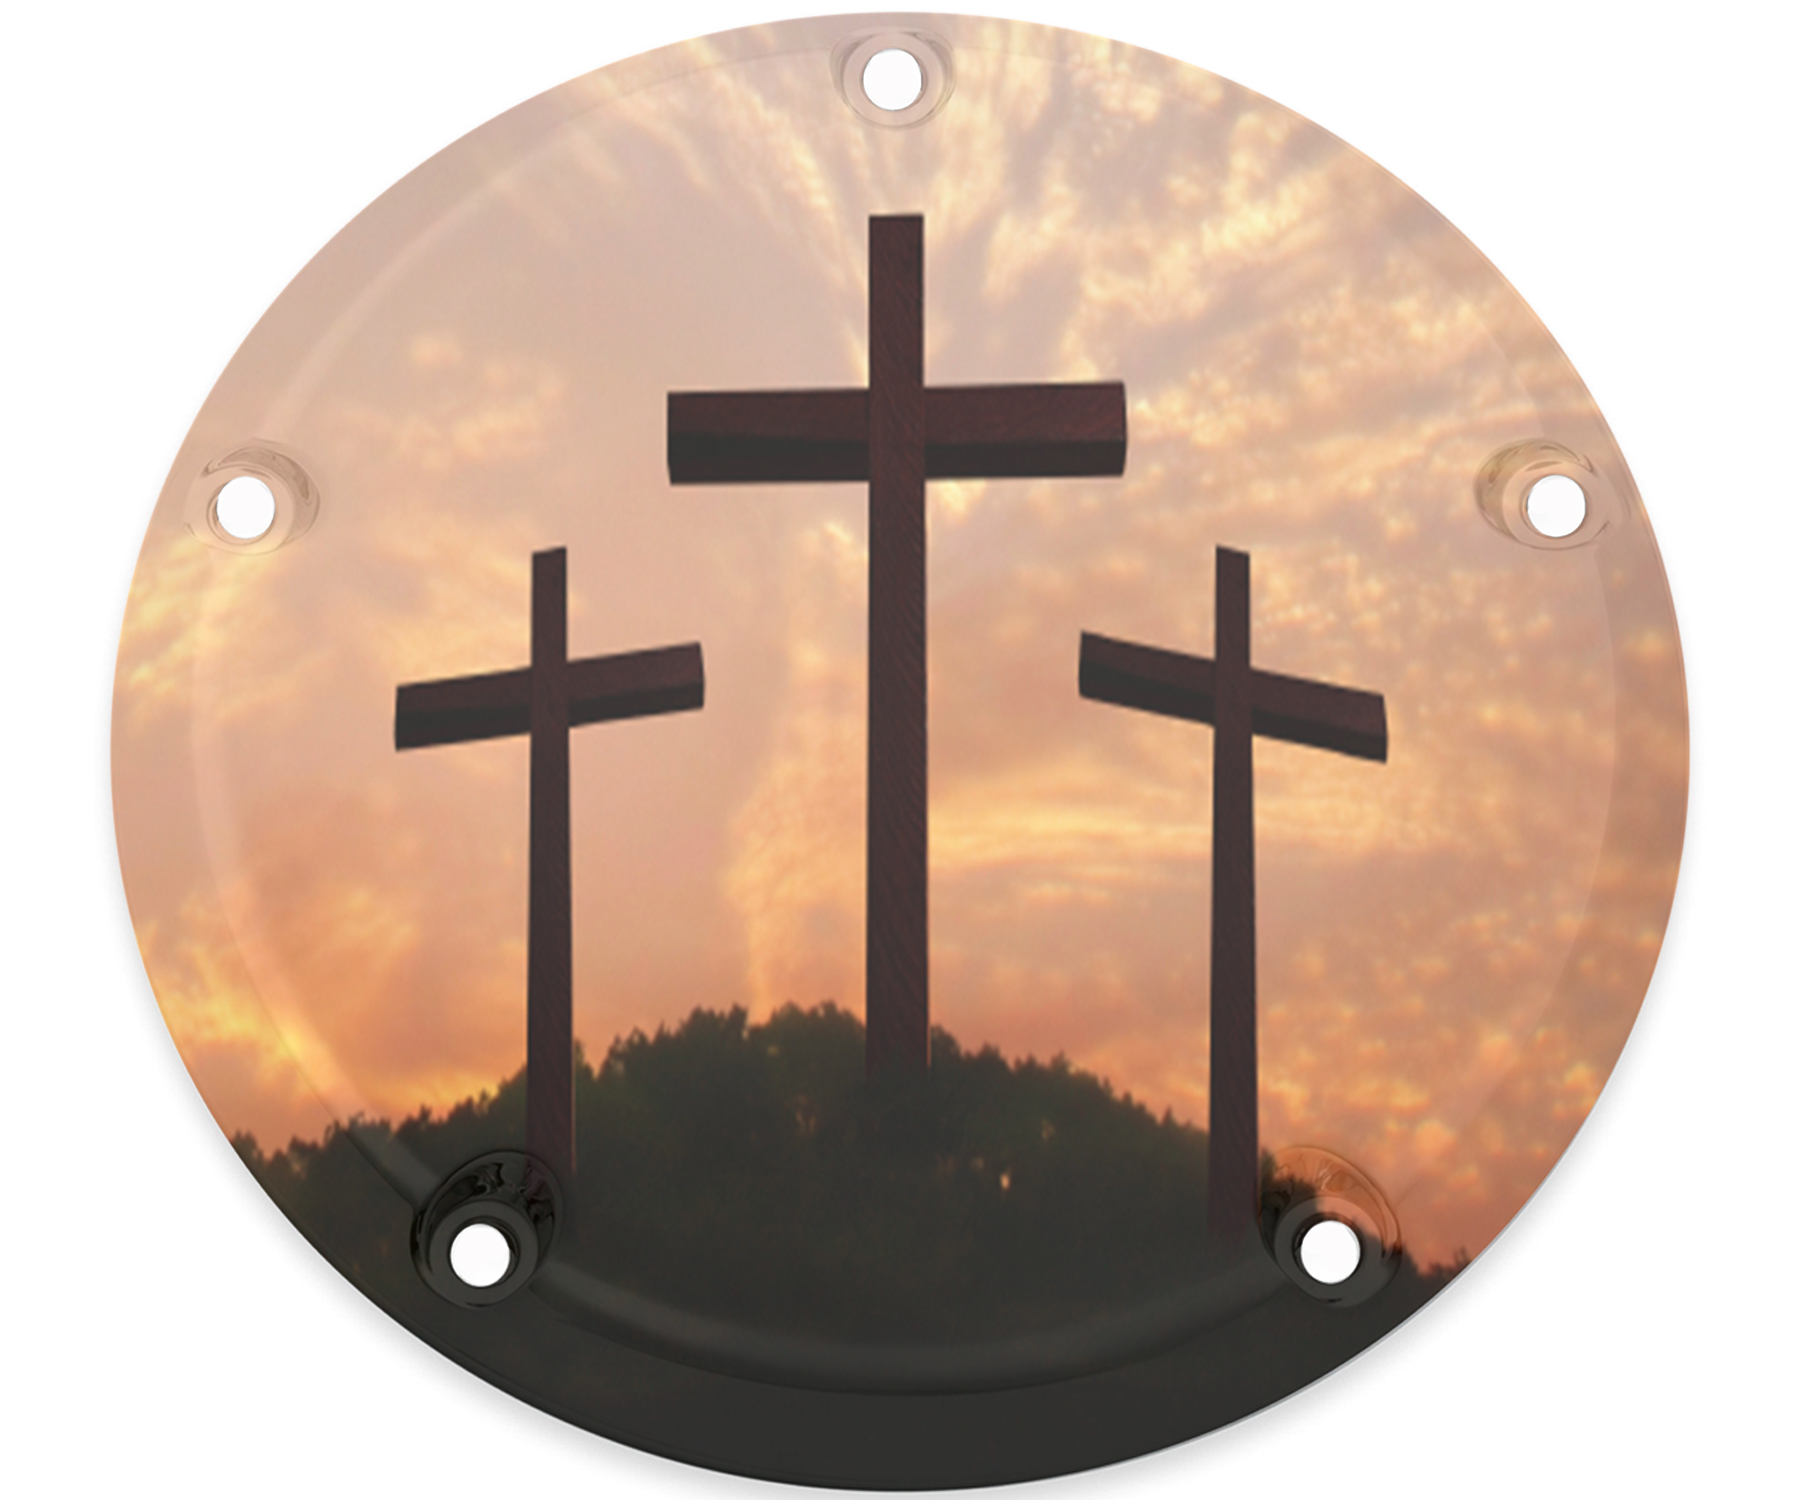 Harley Davidson Custom Horn cover 3 crosses orange sky